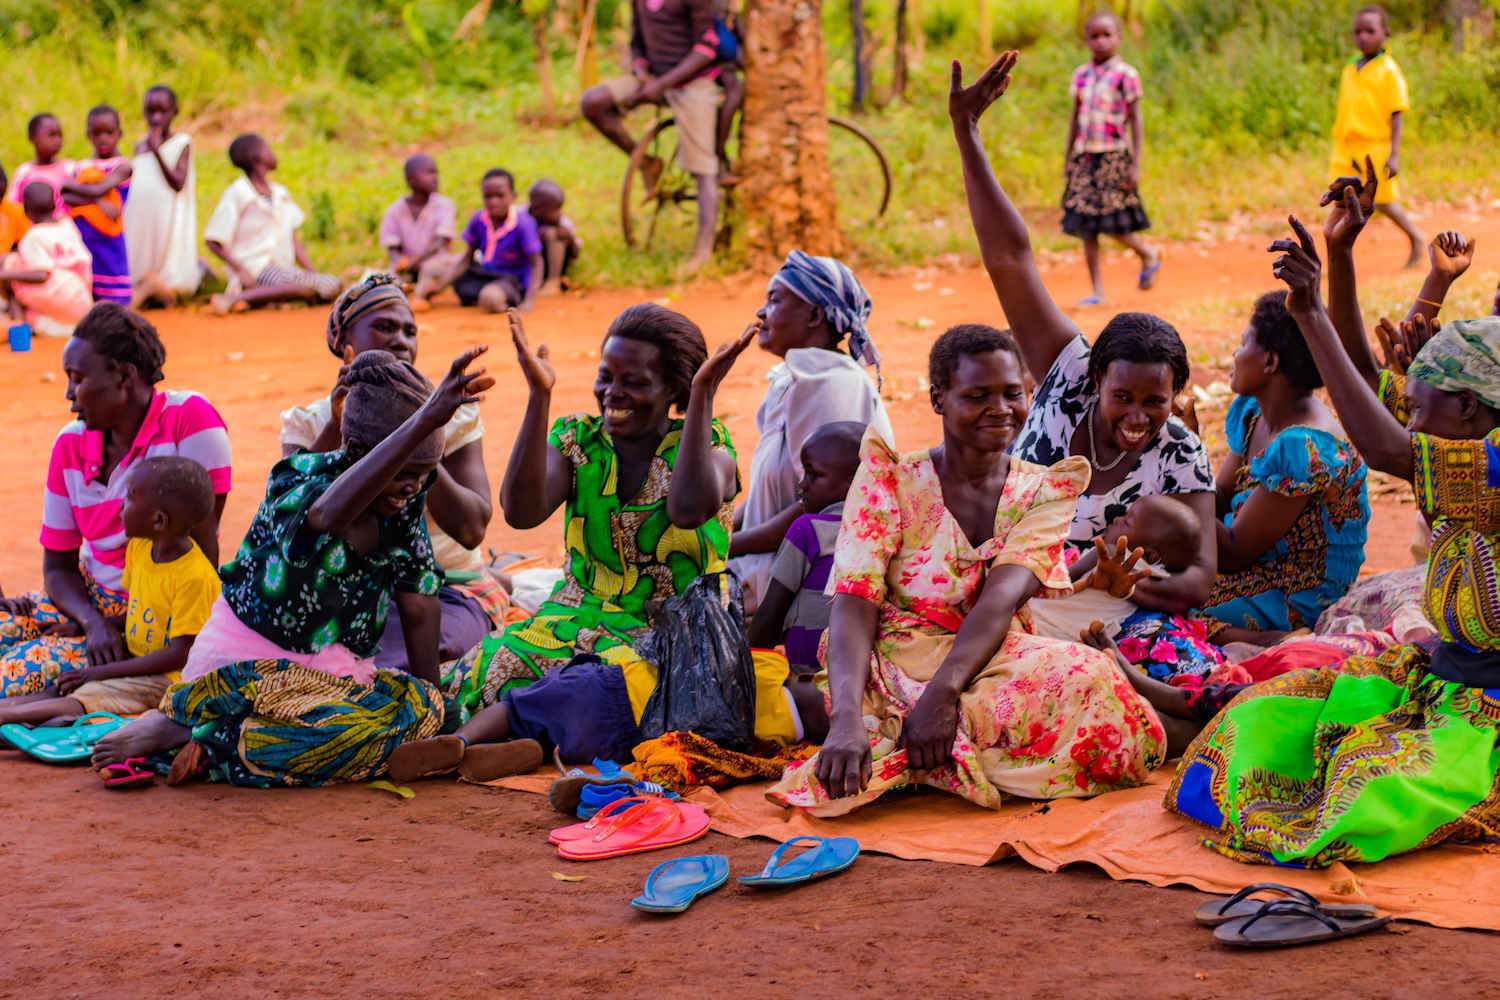 Help Ugandans find local solutions to poverty and injustice! image